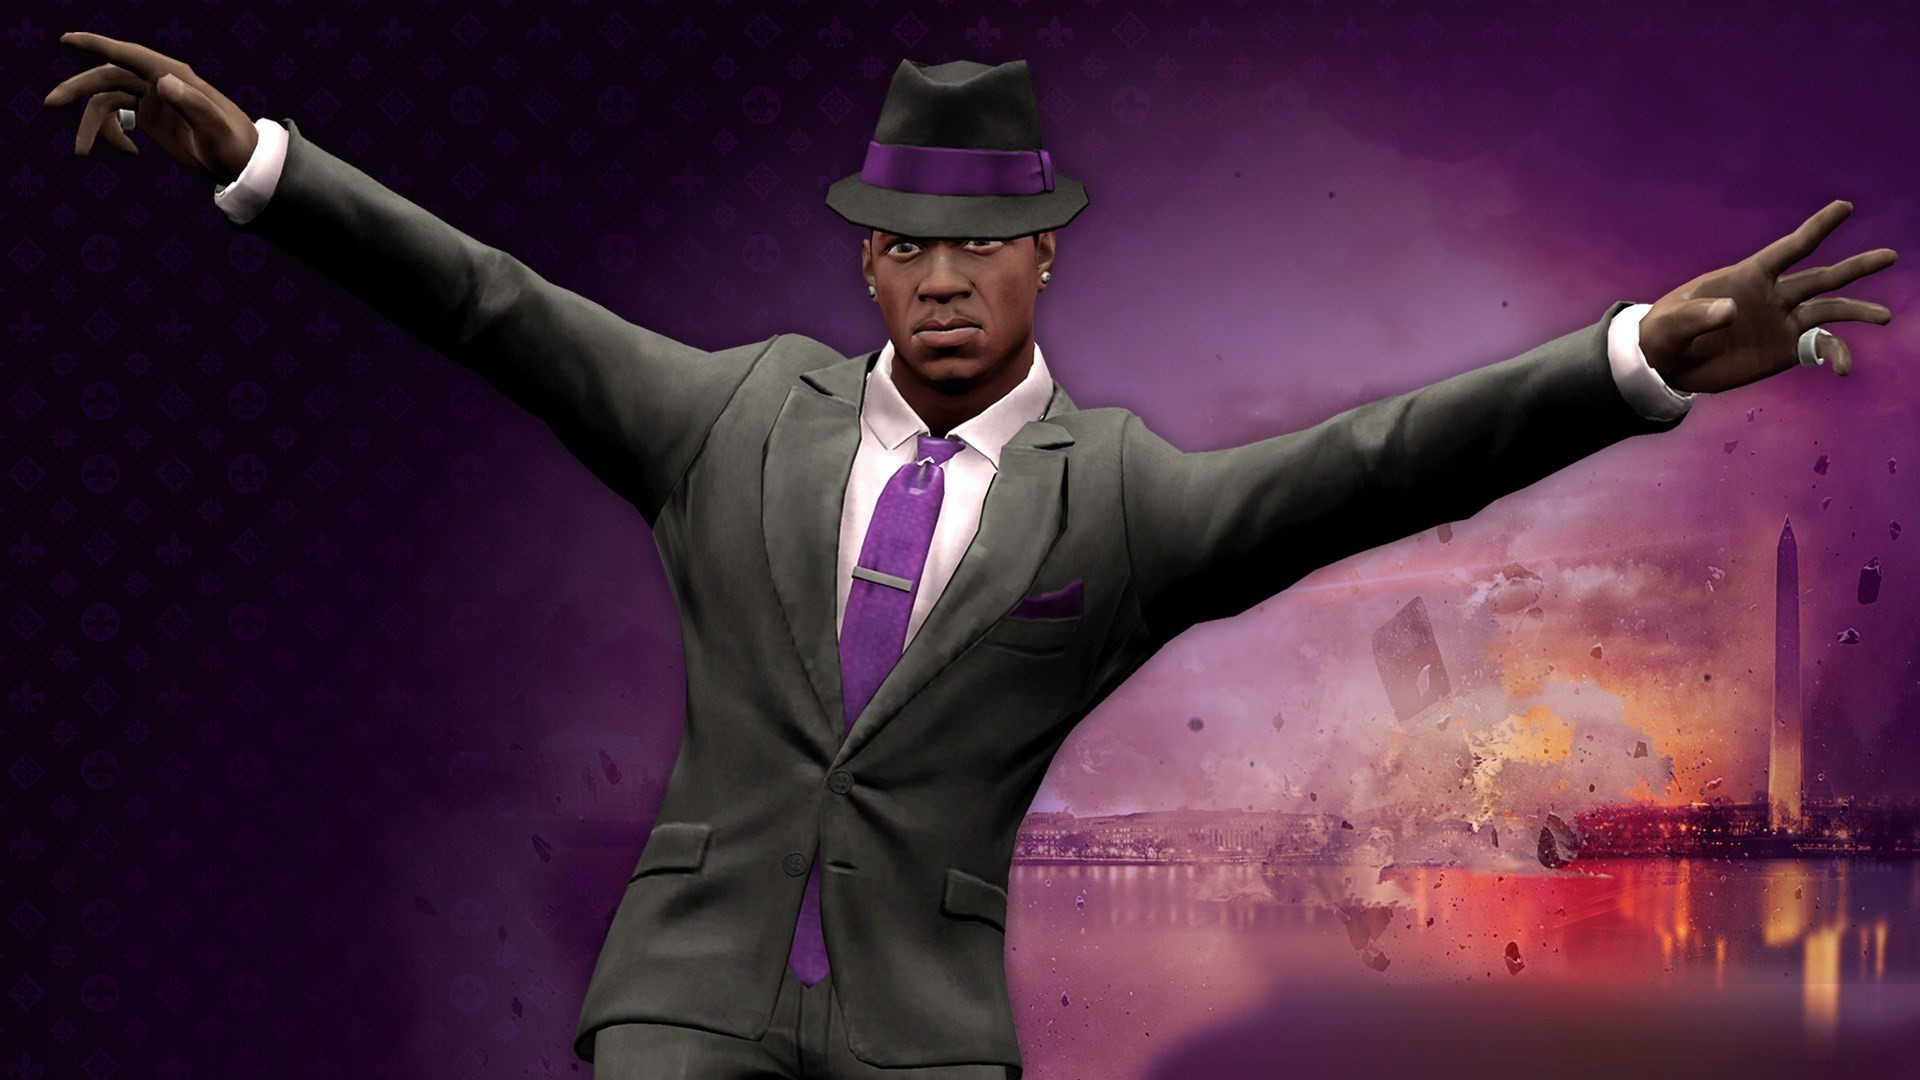 1920x1080 Saints Row IV wallpaper desktop nexus wallpaper, 243 kB - Rain Walls